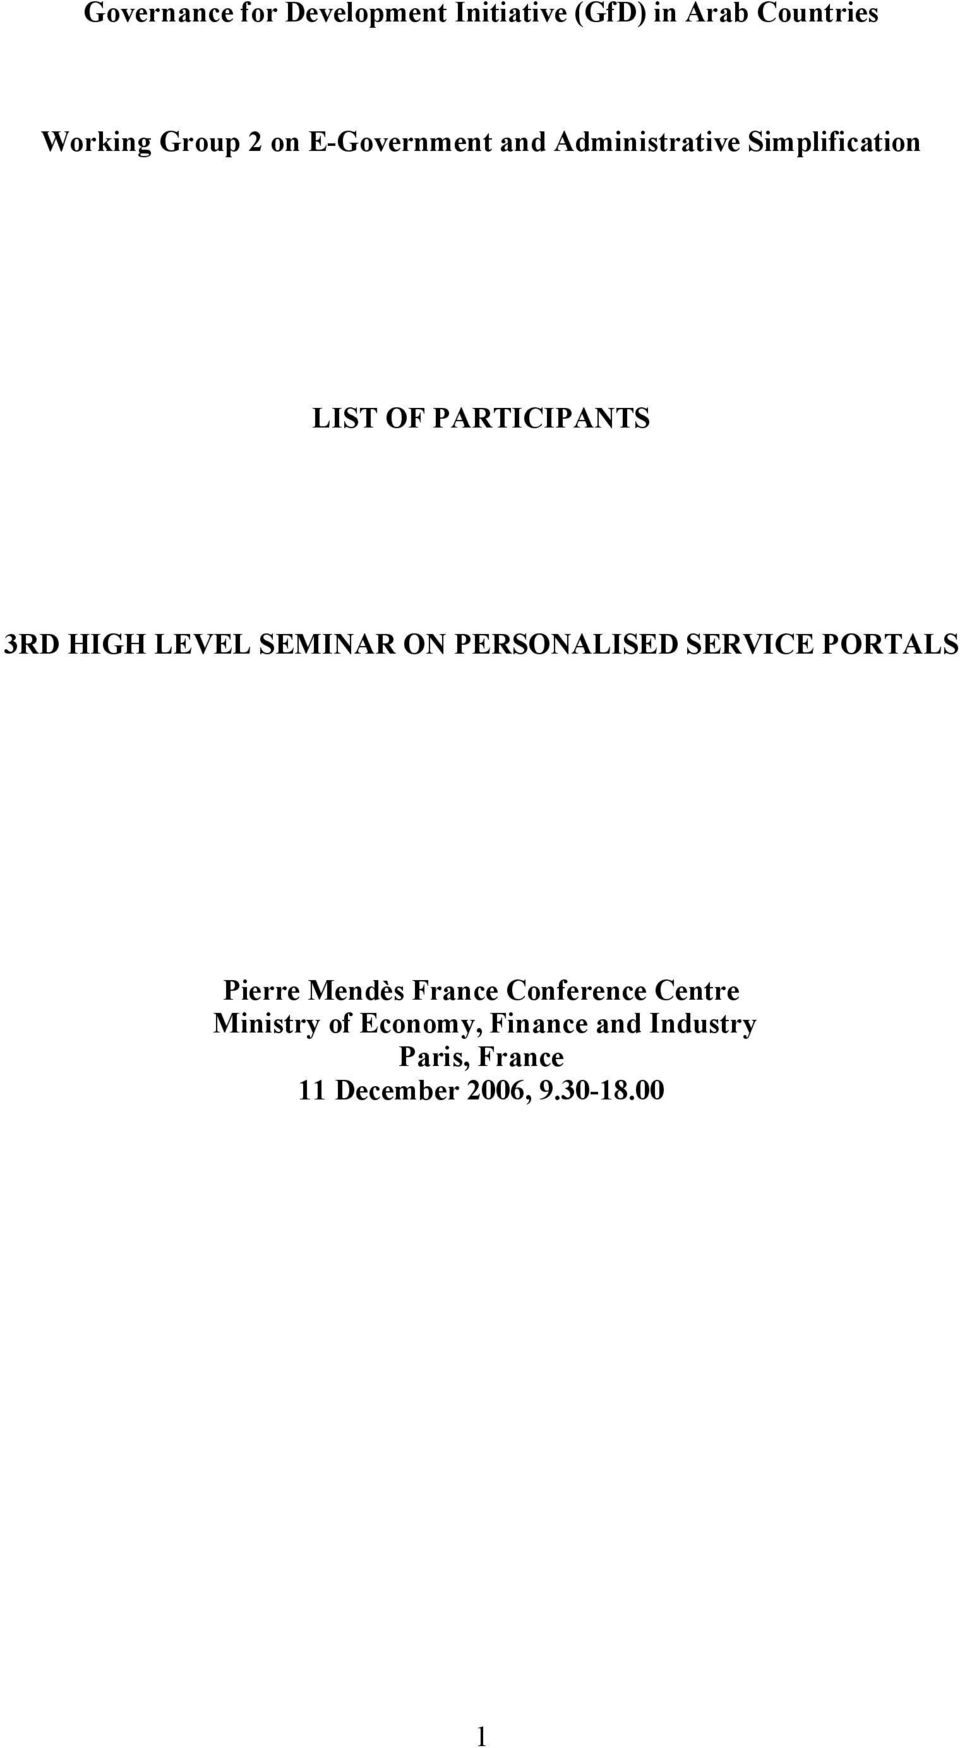 SEMINAR ON PERSONALISED SERVICE PORTALS Pierre Mendès France Conference Centre